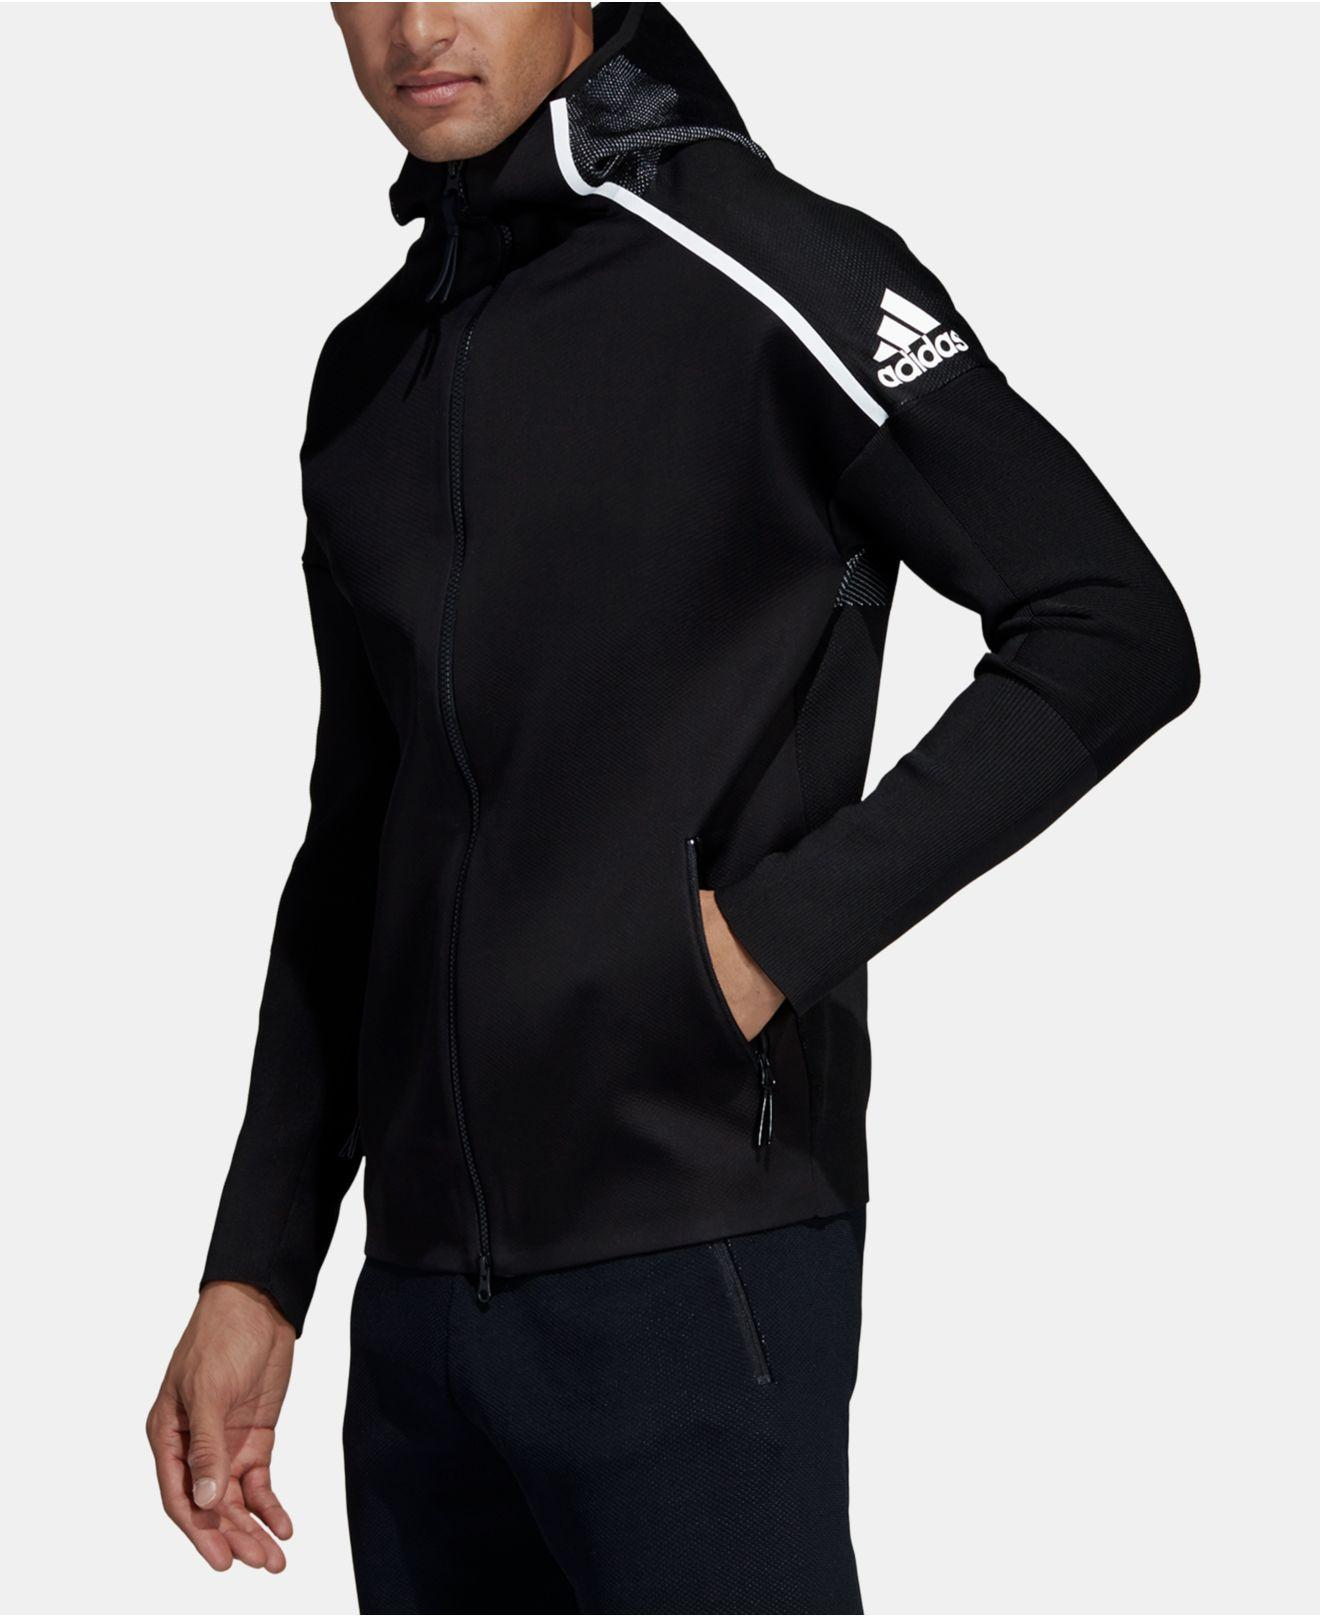 f5a98cdc5 adidas Zne Hybrid Zip Hoodie in Black for Men - Lyst